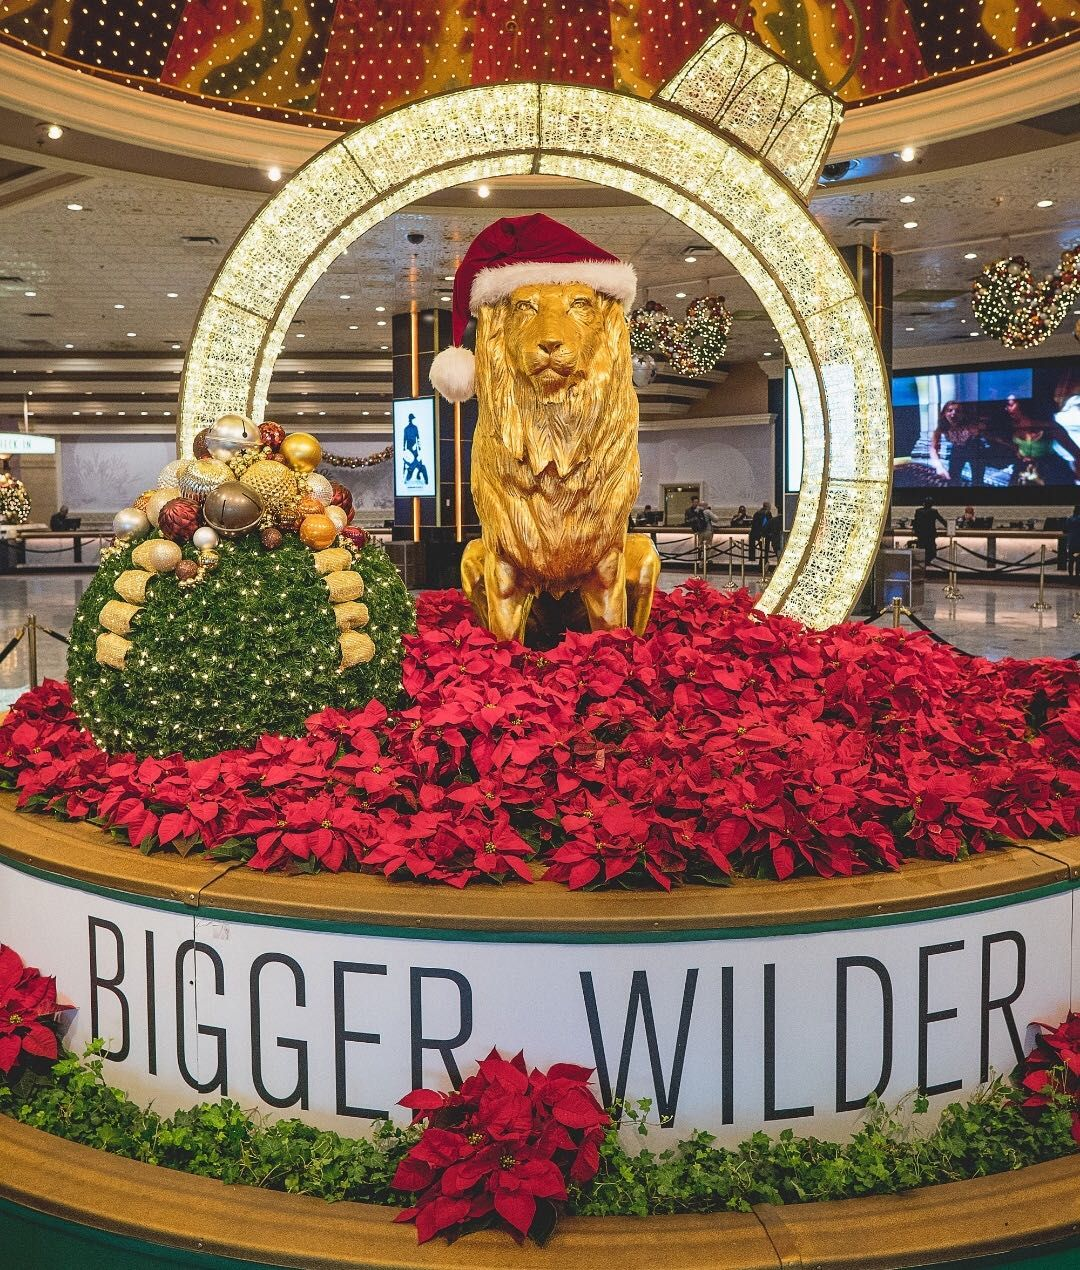 Christmas In Las Vegas Would Not Be Complete Without Mgm Grand S Leo Dressed Up For The Season Winter In La Las Vegas Hotels Mgm Grand Las Vegas Vegas Hotel